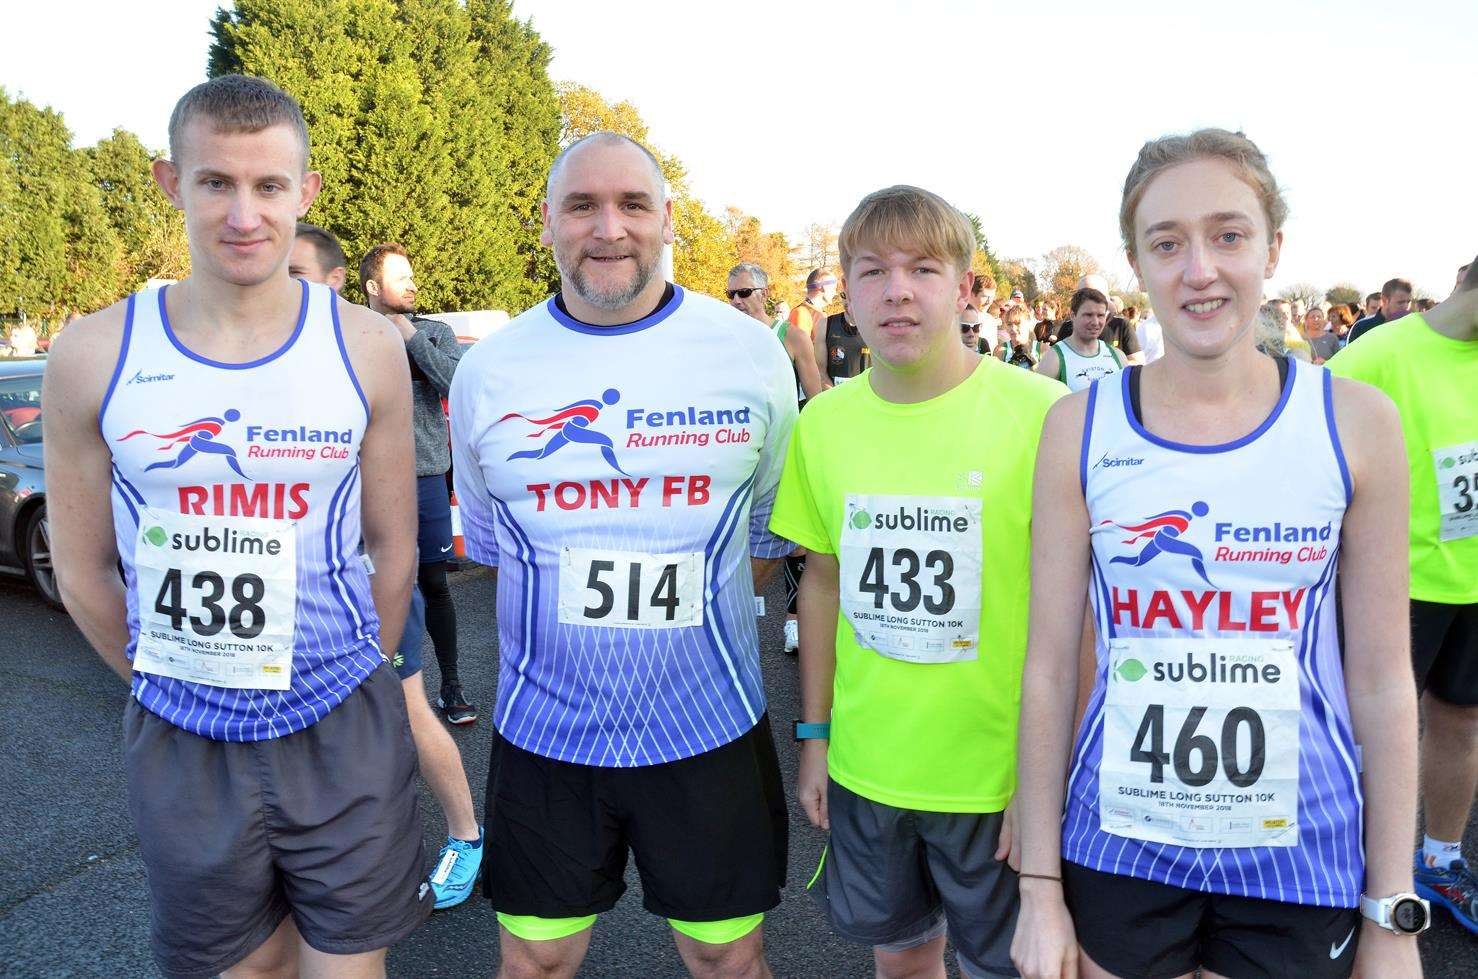 Fenland Running Club